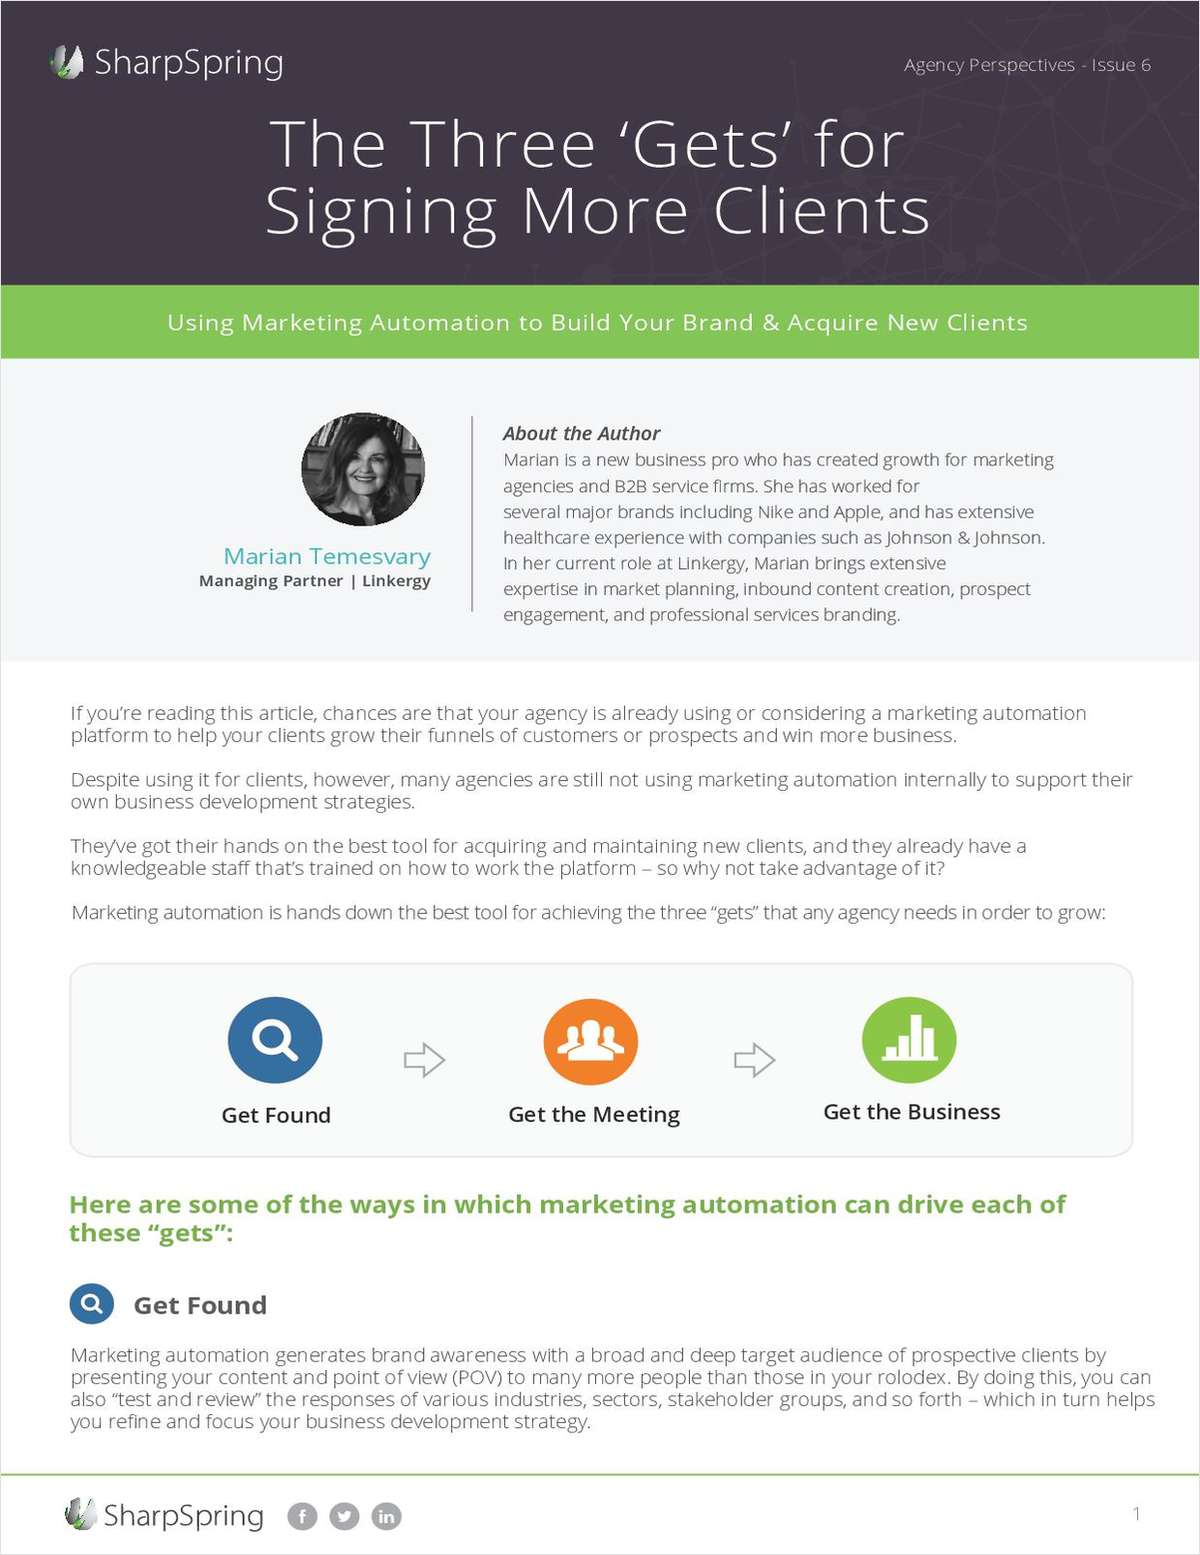 The 3 'Gets' for Signing More Clients